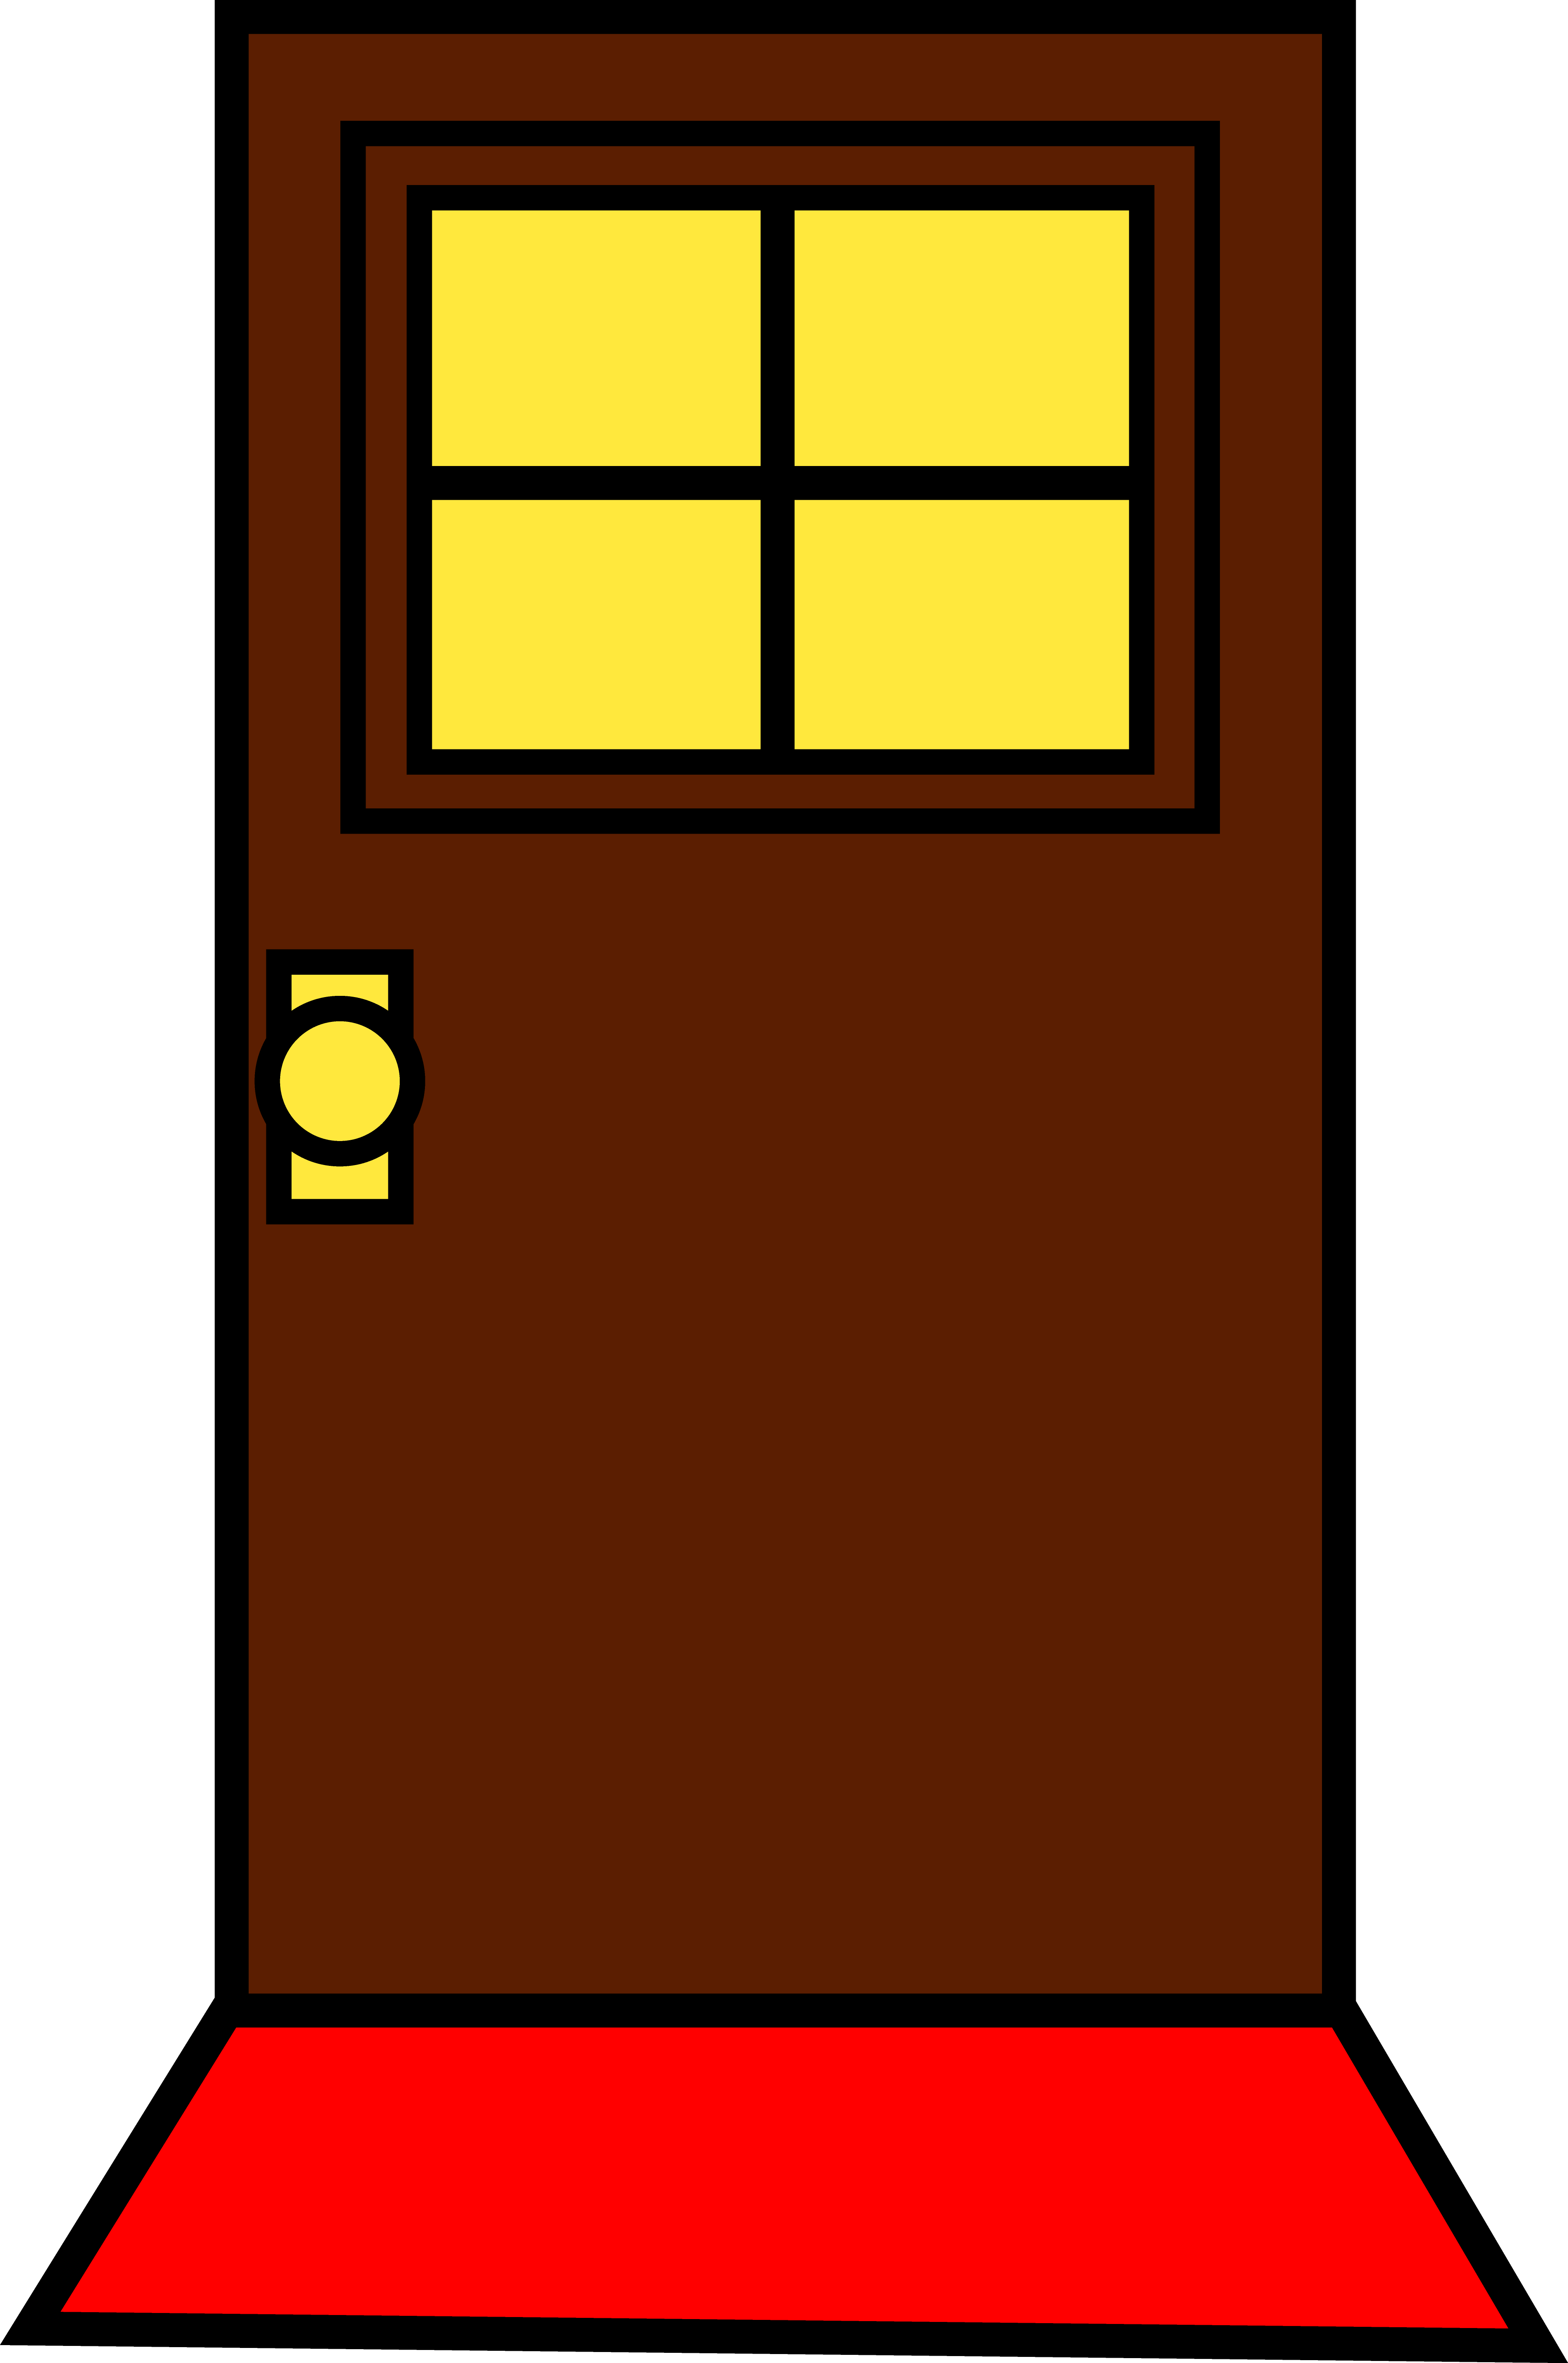 svg transparent library Drawing rectangle cartoon. Glamorous house door clipart